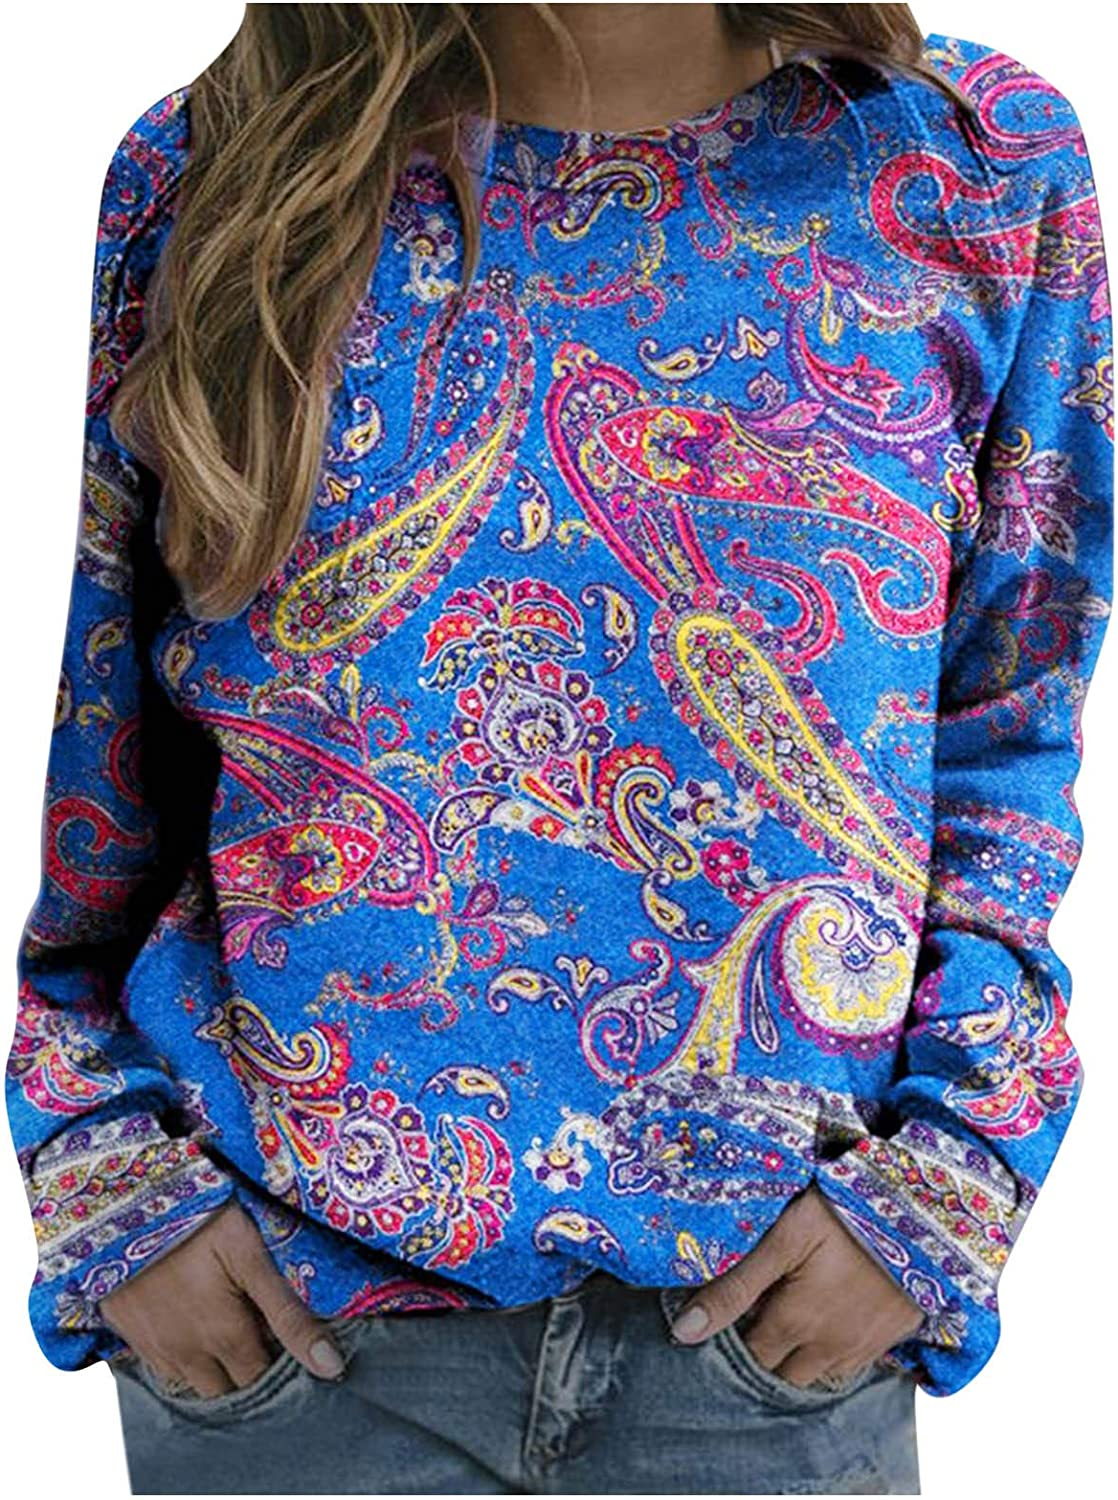 Nulairt Pullover Tops for Women Graphic Colorful Print Sweater Brand new Max 68% OFF C